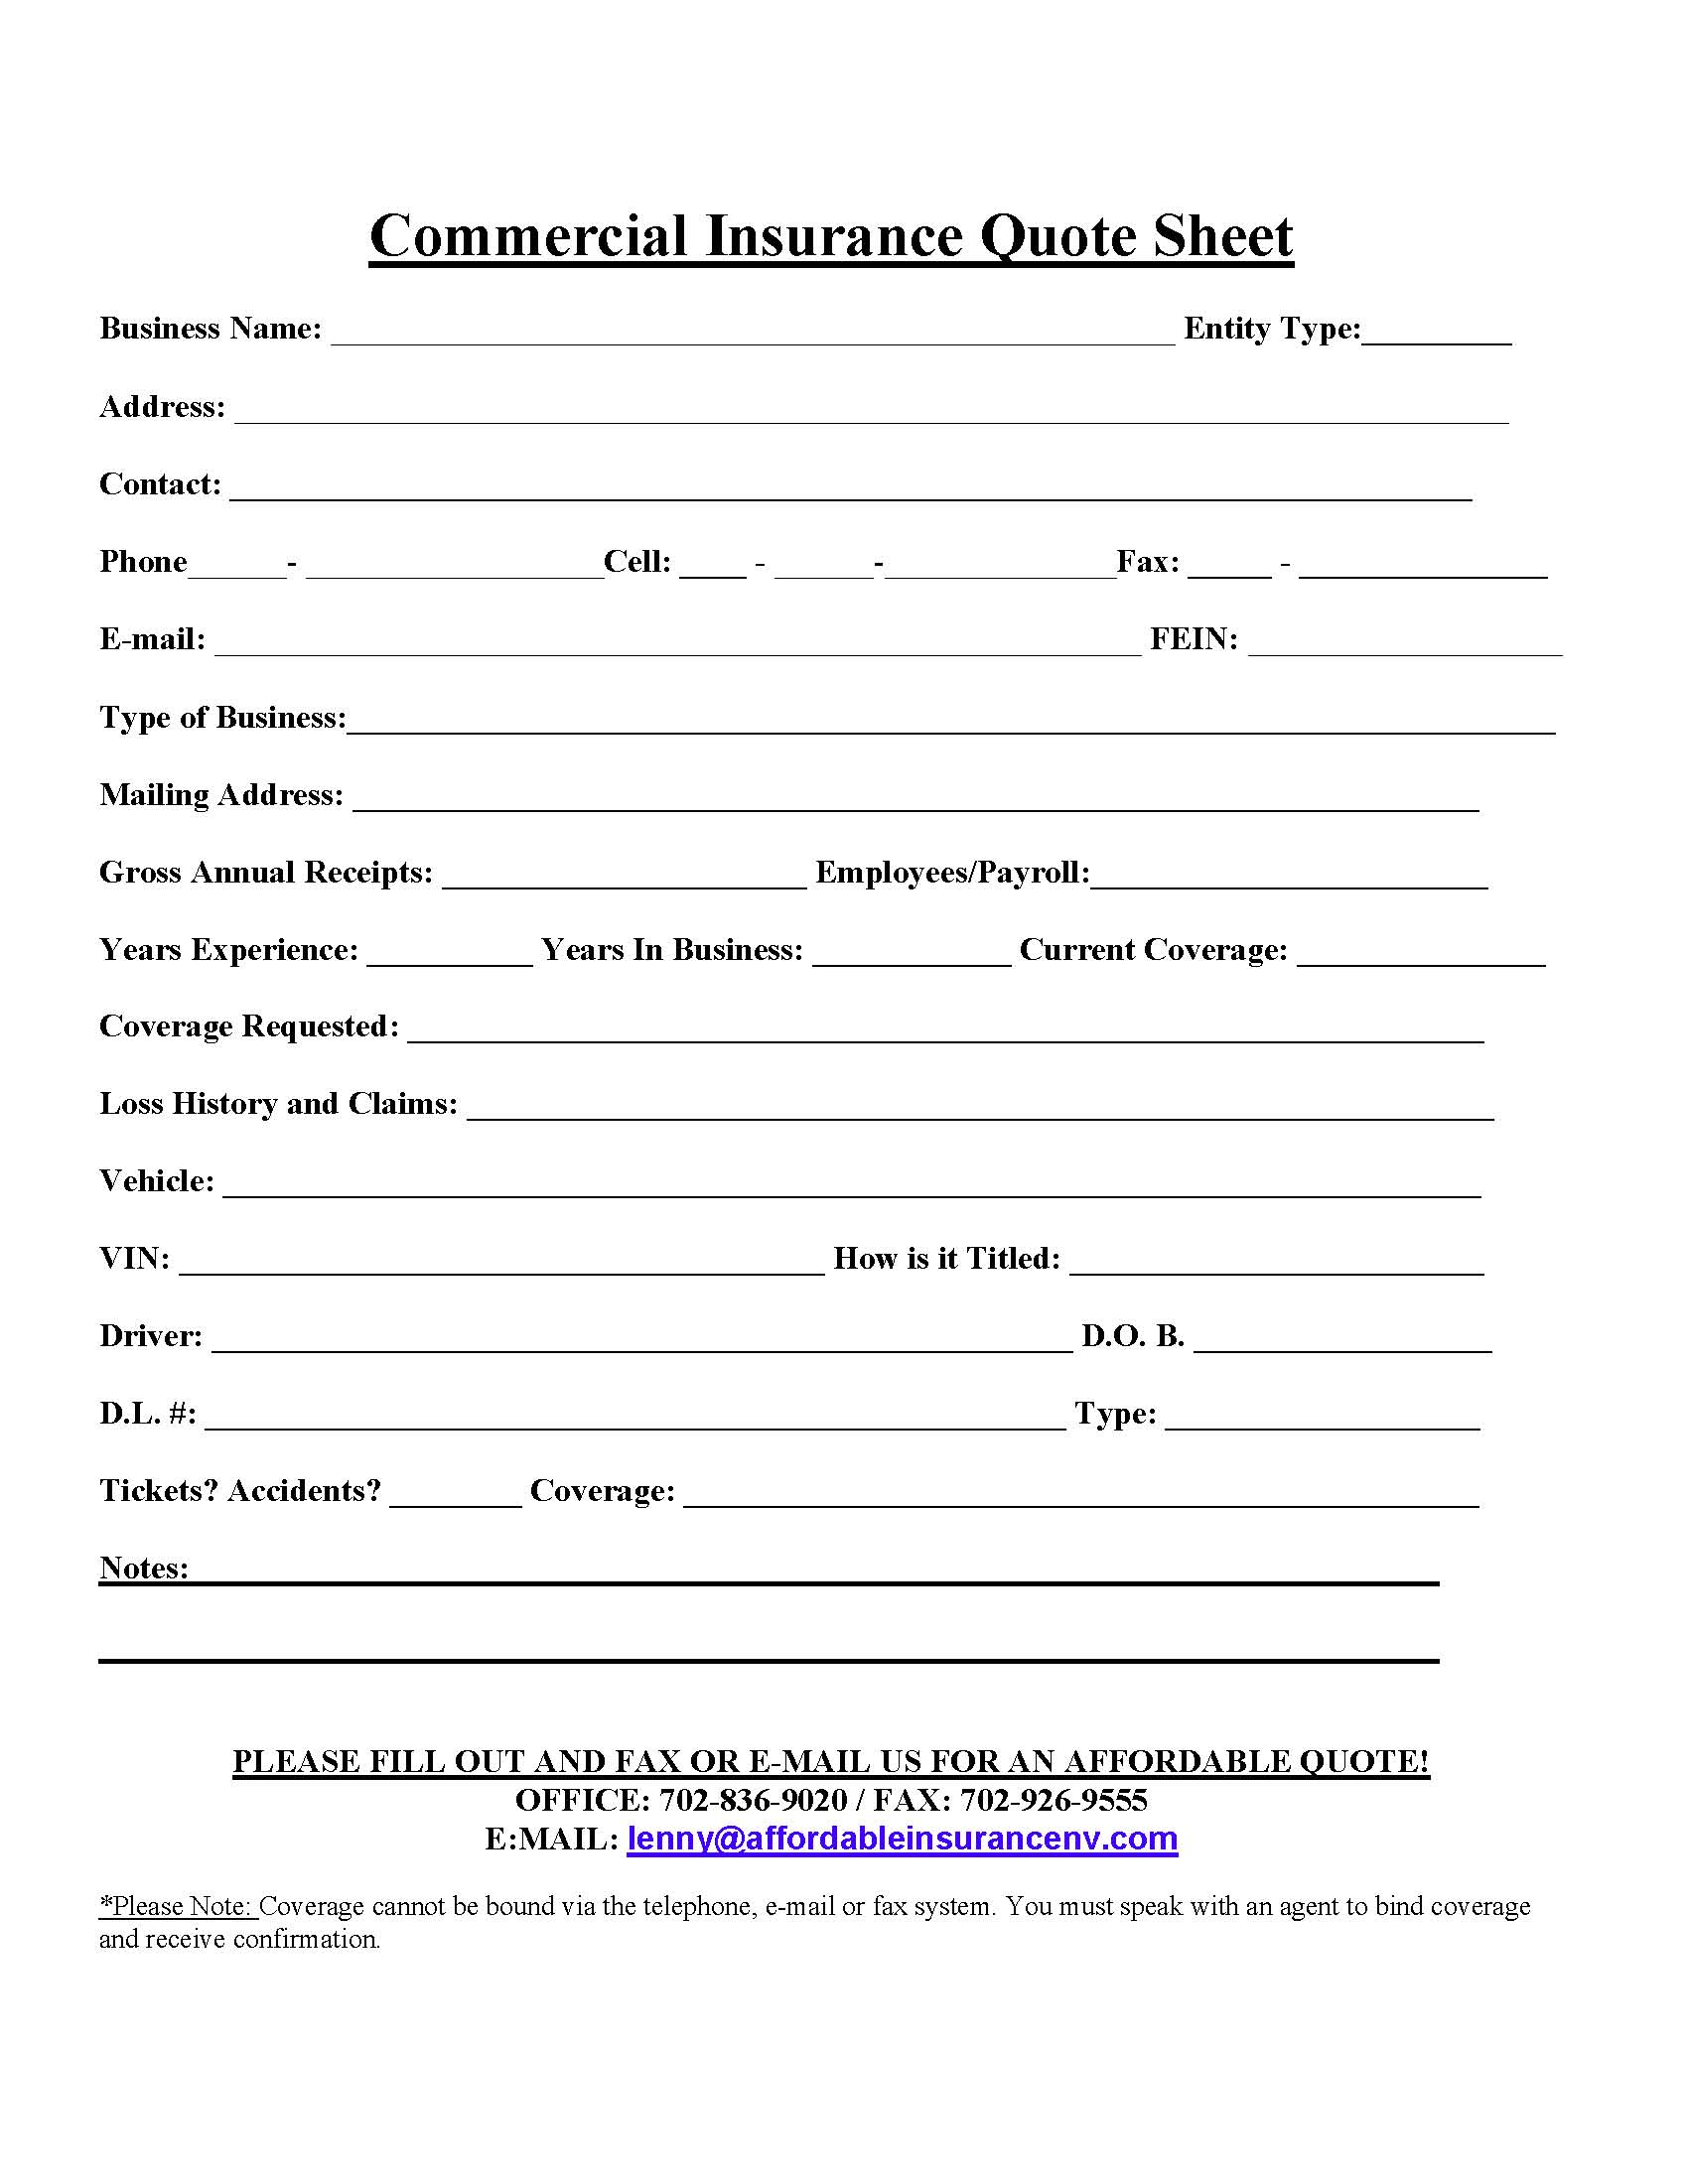 commercial insurance quote sheet Contact Us/Forms Page - AFFORDABLE INSURANCE